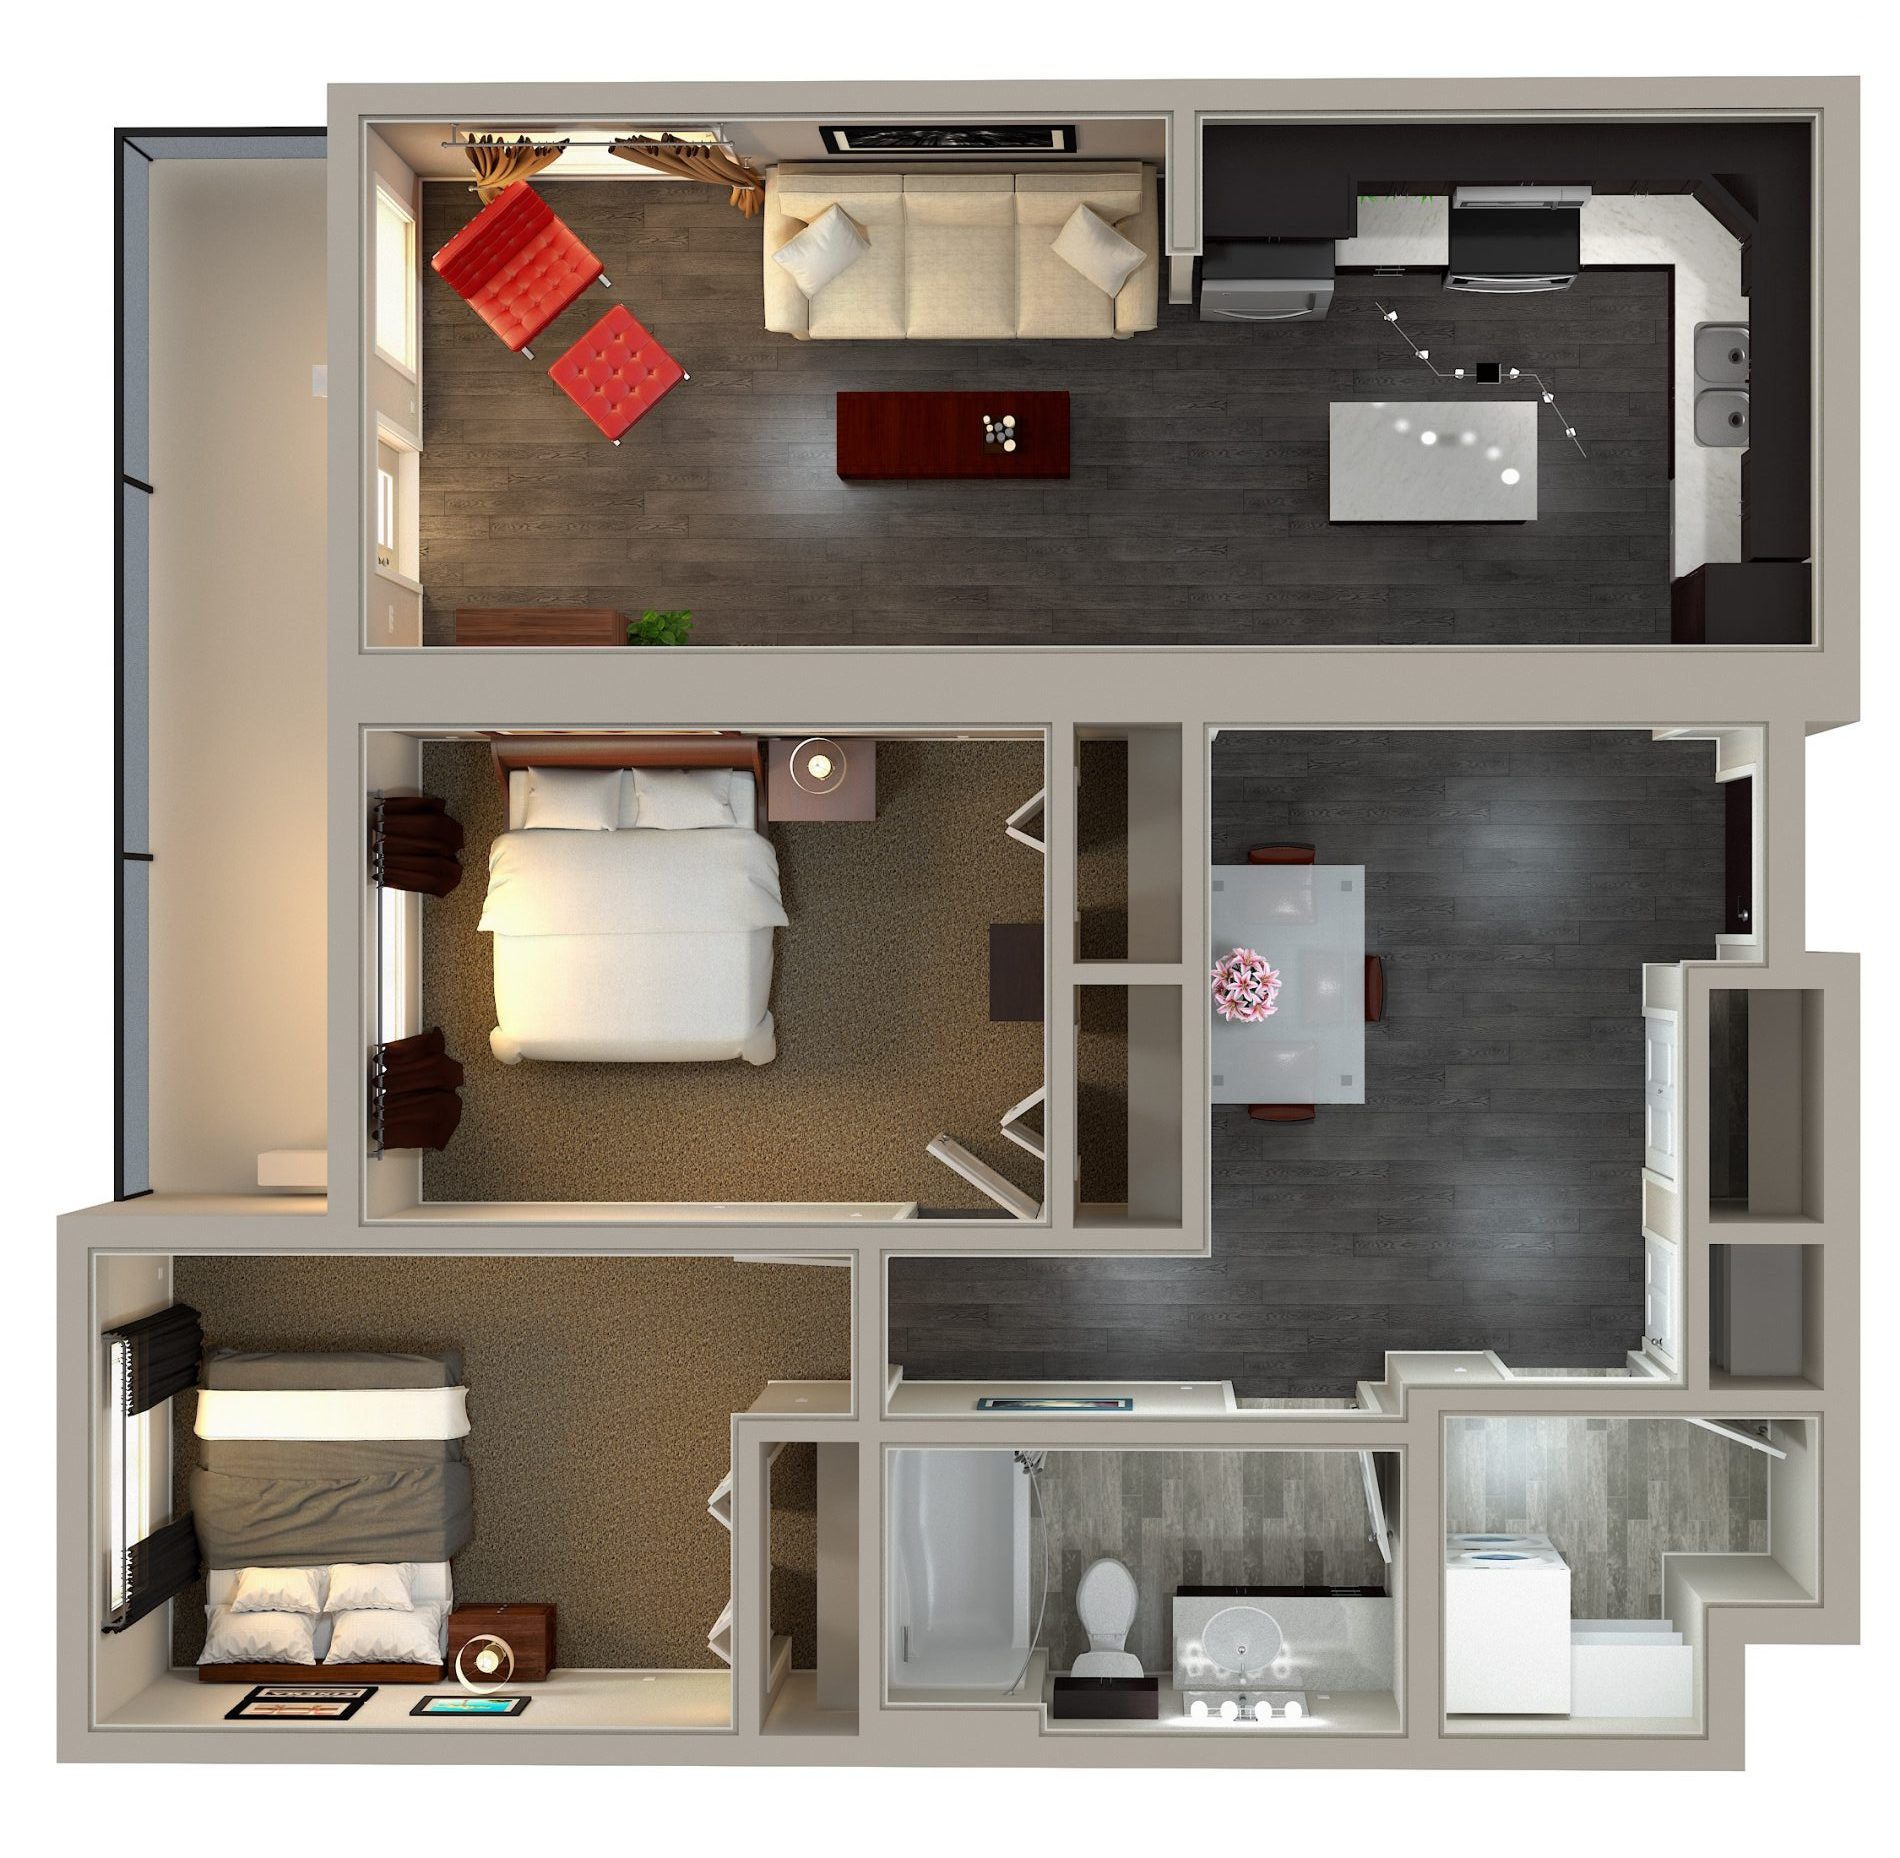 Kensington Flats 2 Bedroom Condo Floor Plan Option #2: 915 sq. ft. plan